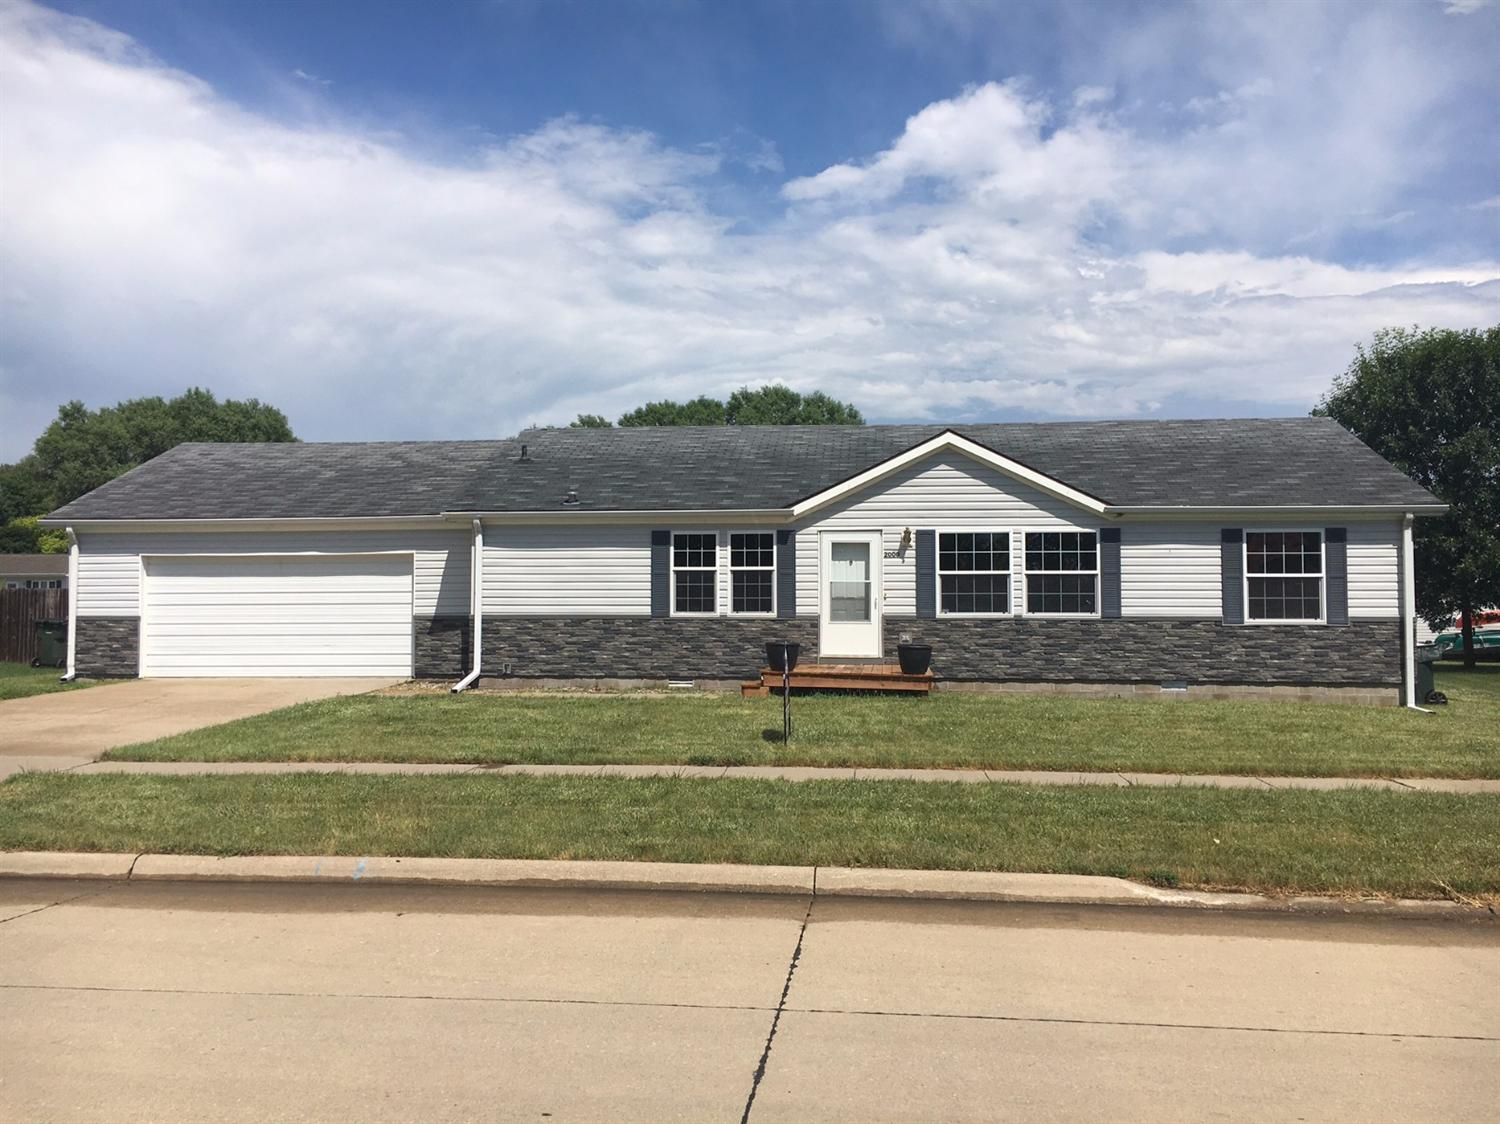 2000 Hanford St, Sioux City, IA 51109